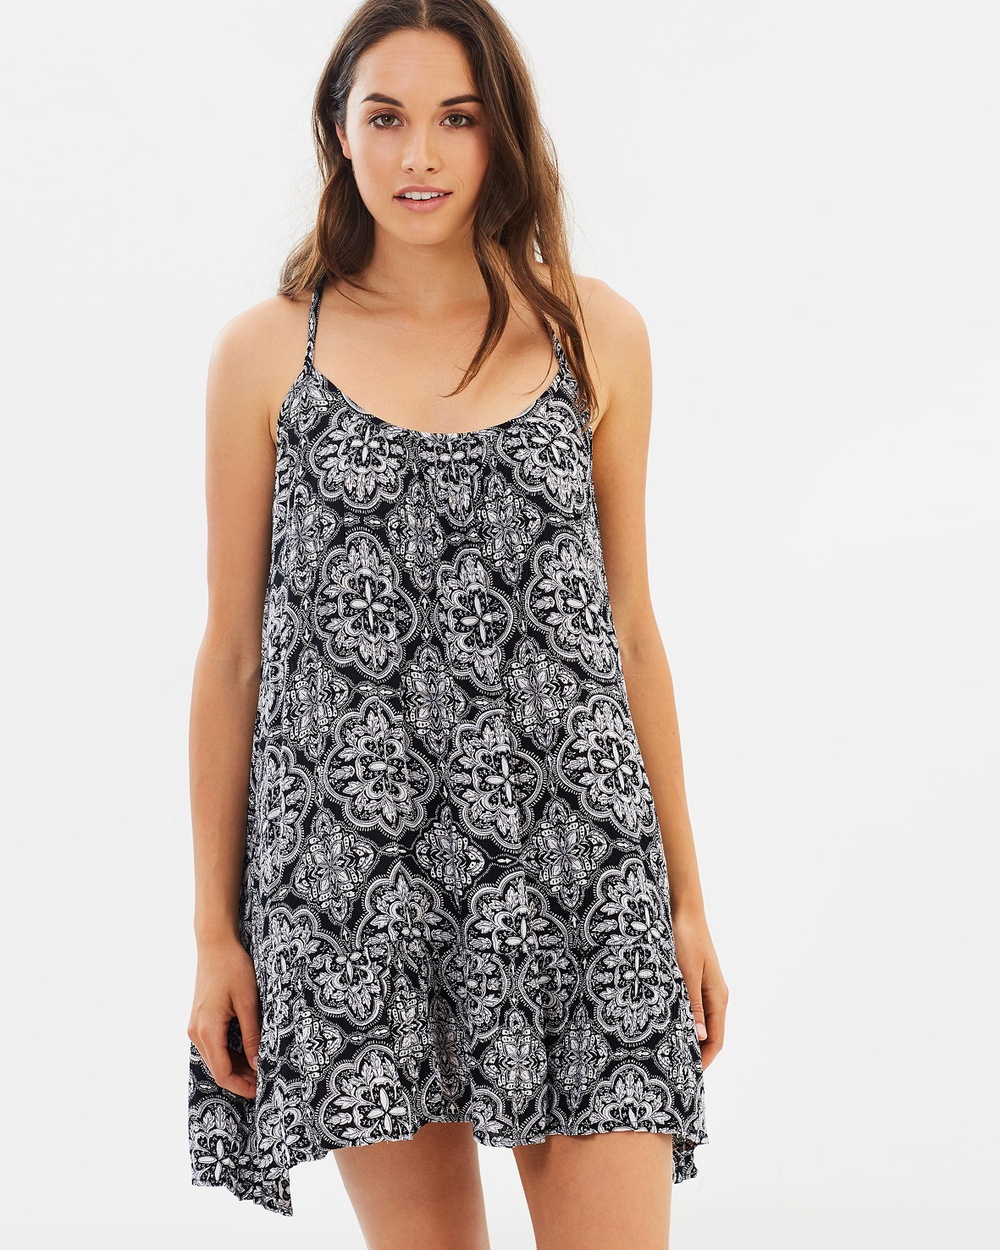 Volcom Simple Things Dress Dresses Vintage Black Simple Things Dress